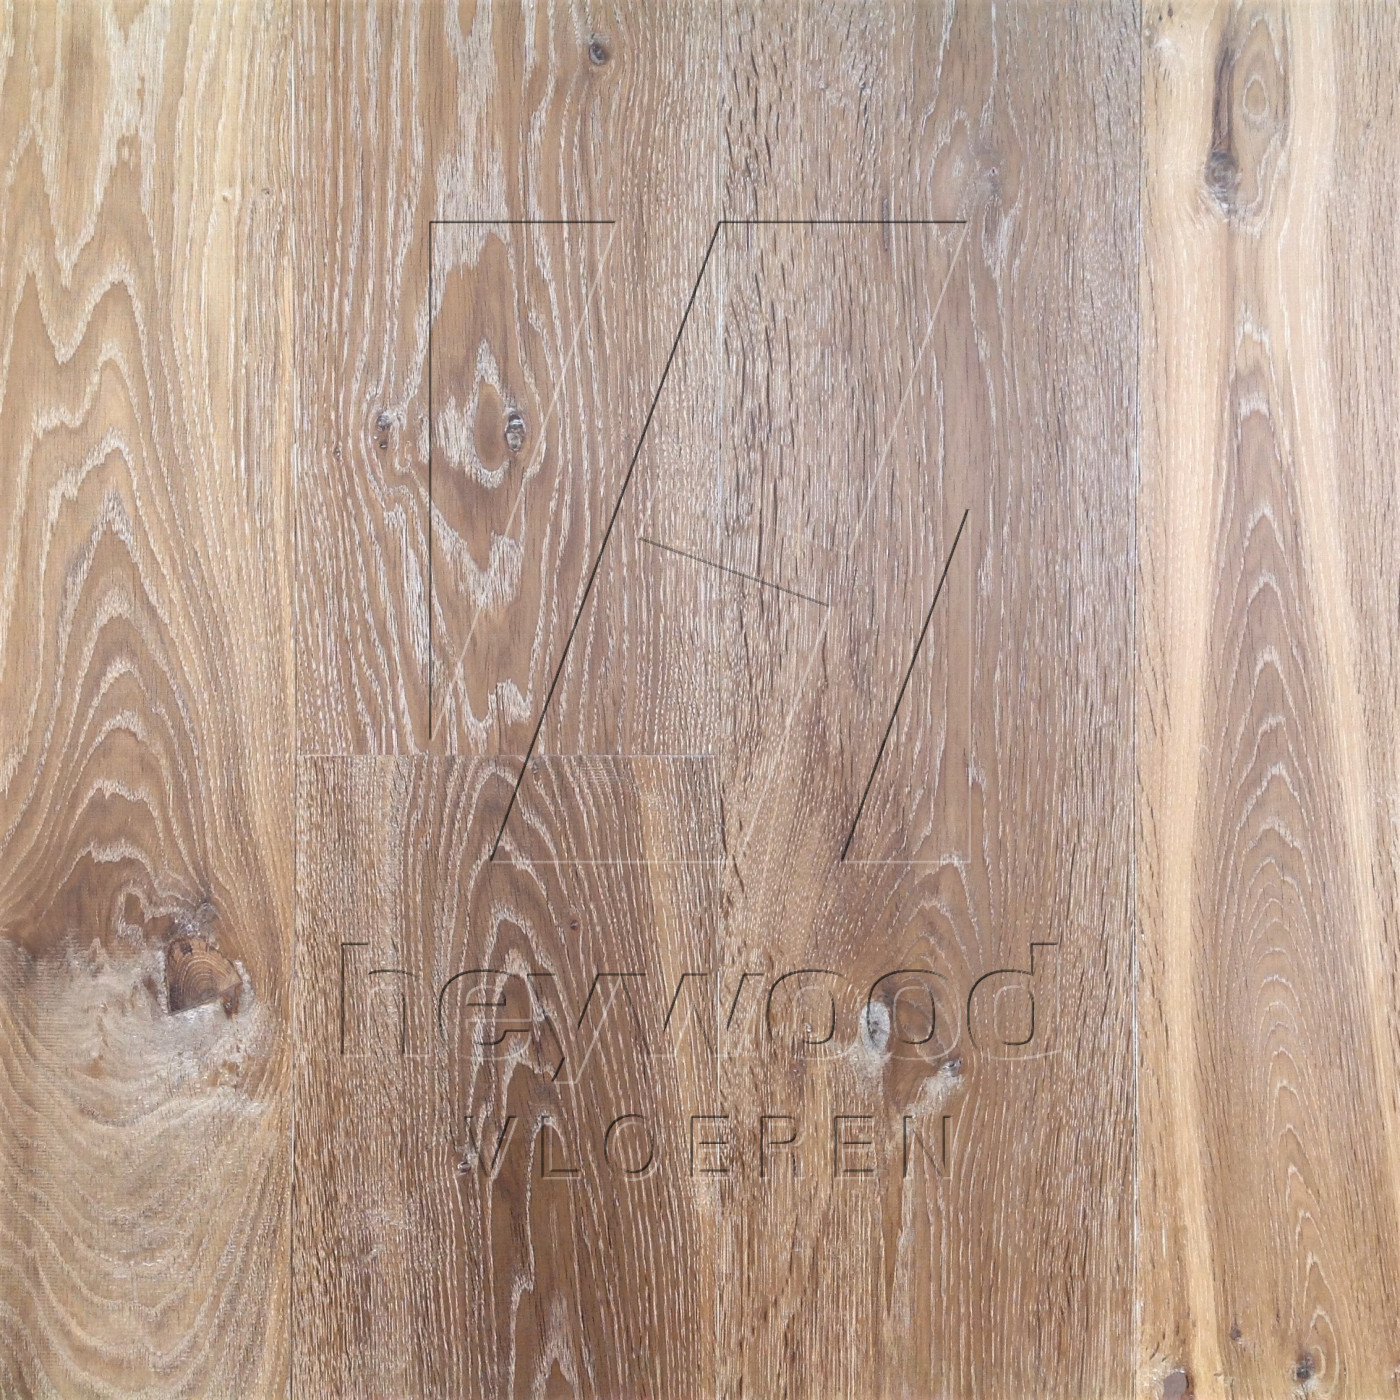 Plank Kaprun in European Oak Character of Bespoke Wooden Floors